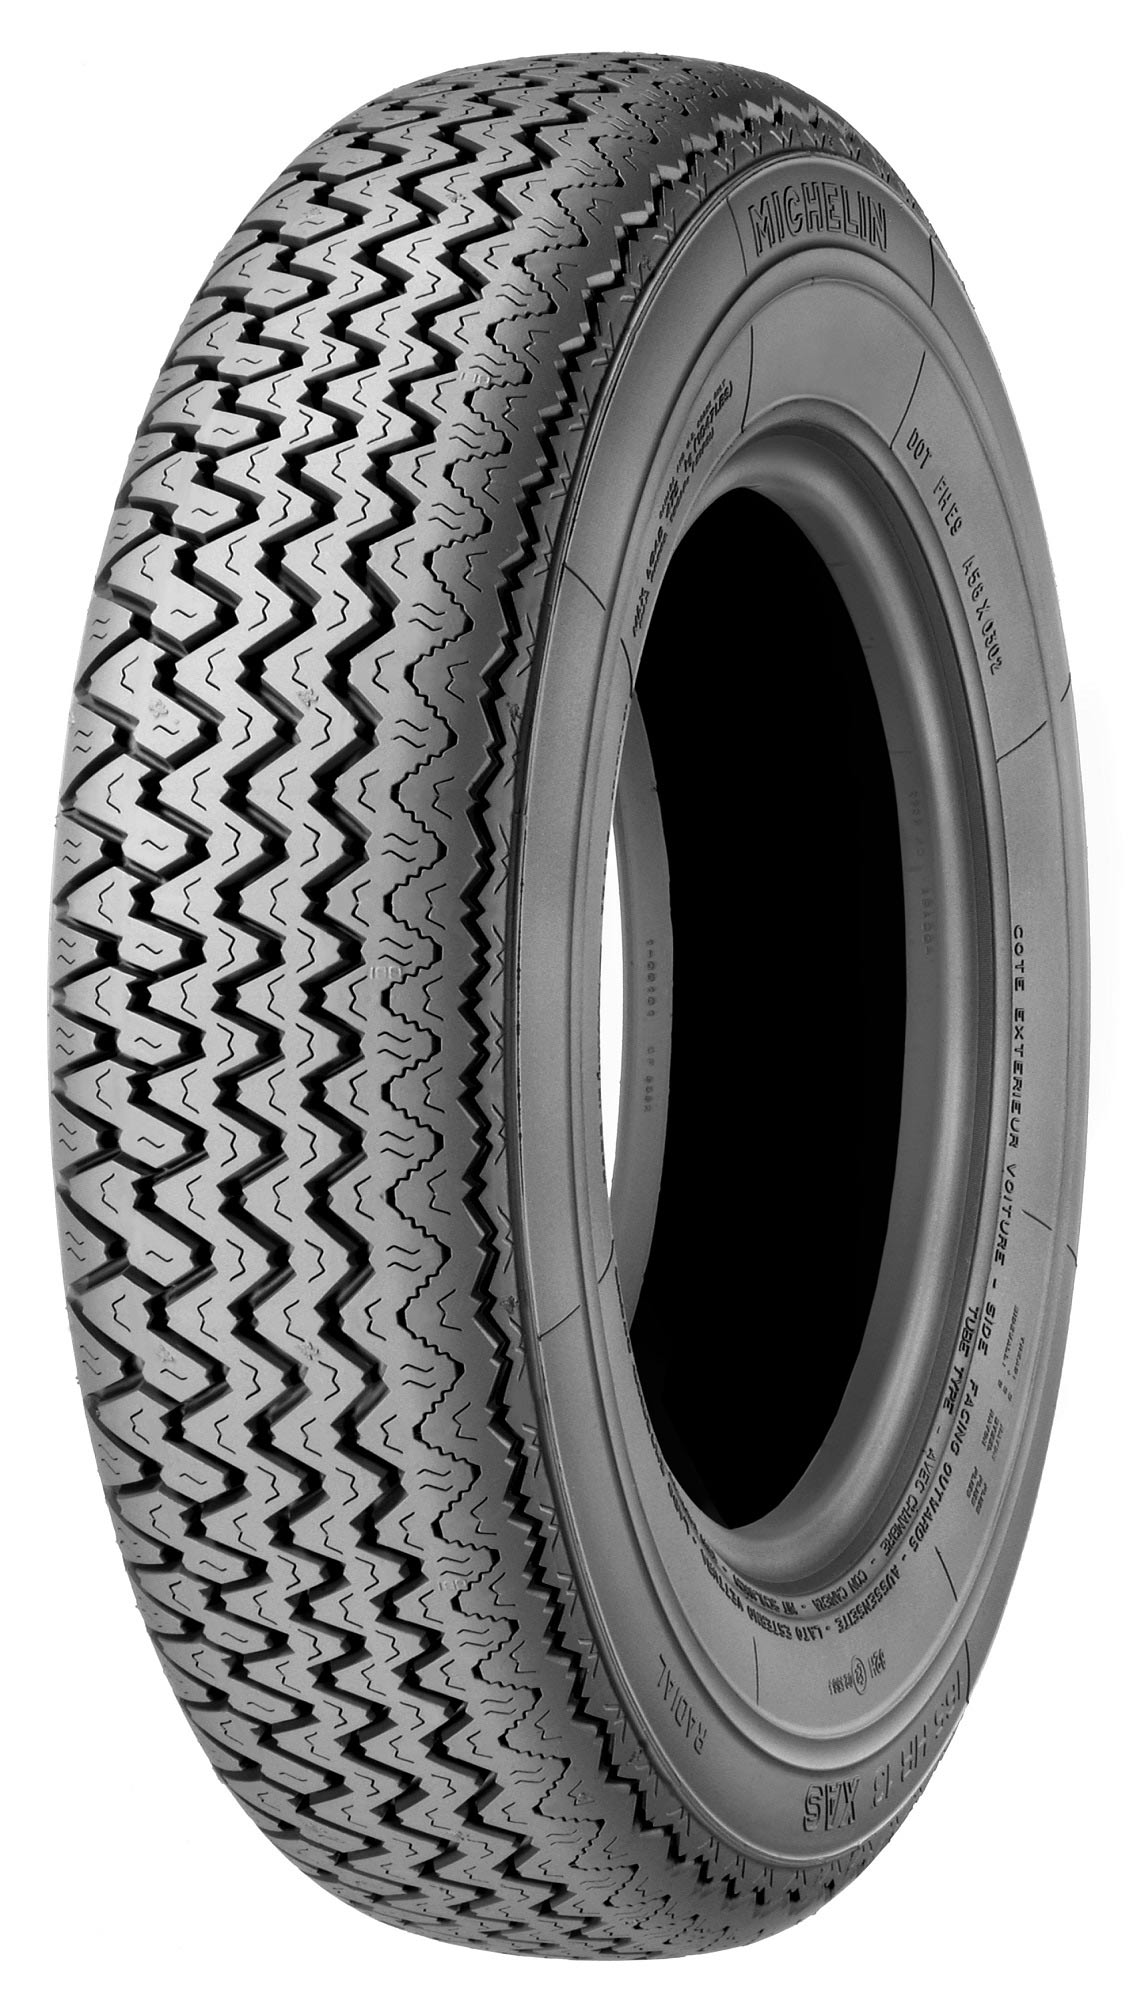 MICHELIN XAS FF 145HR13 TL 74H